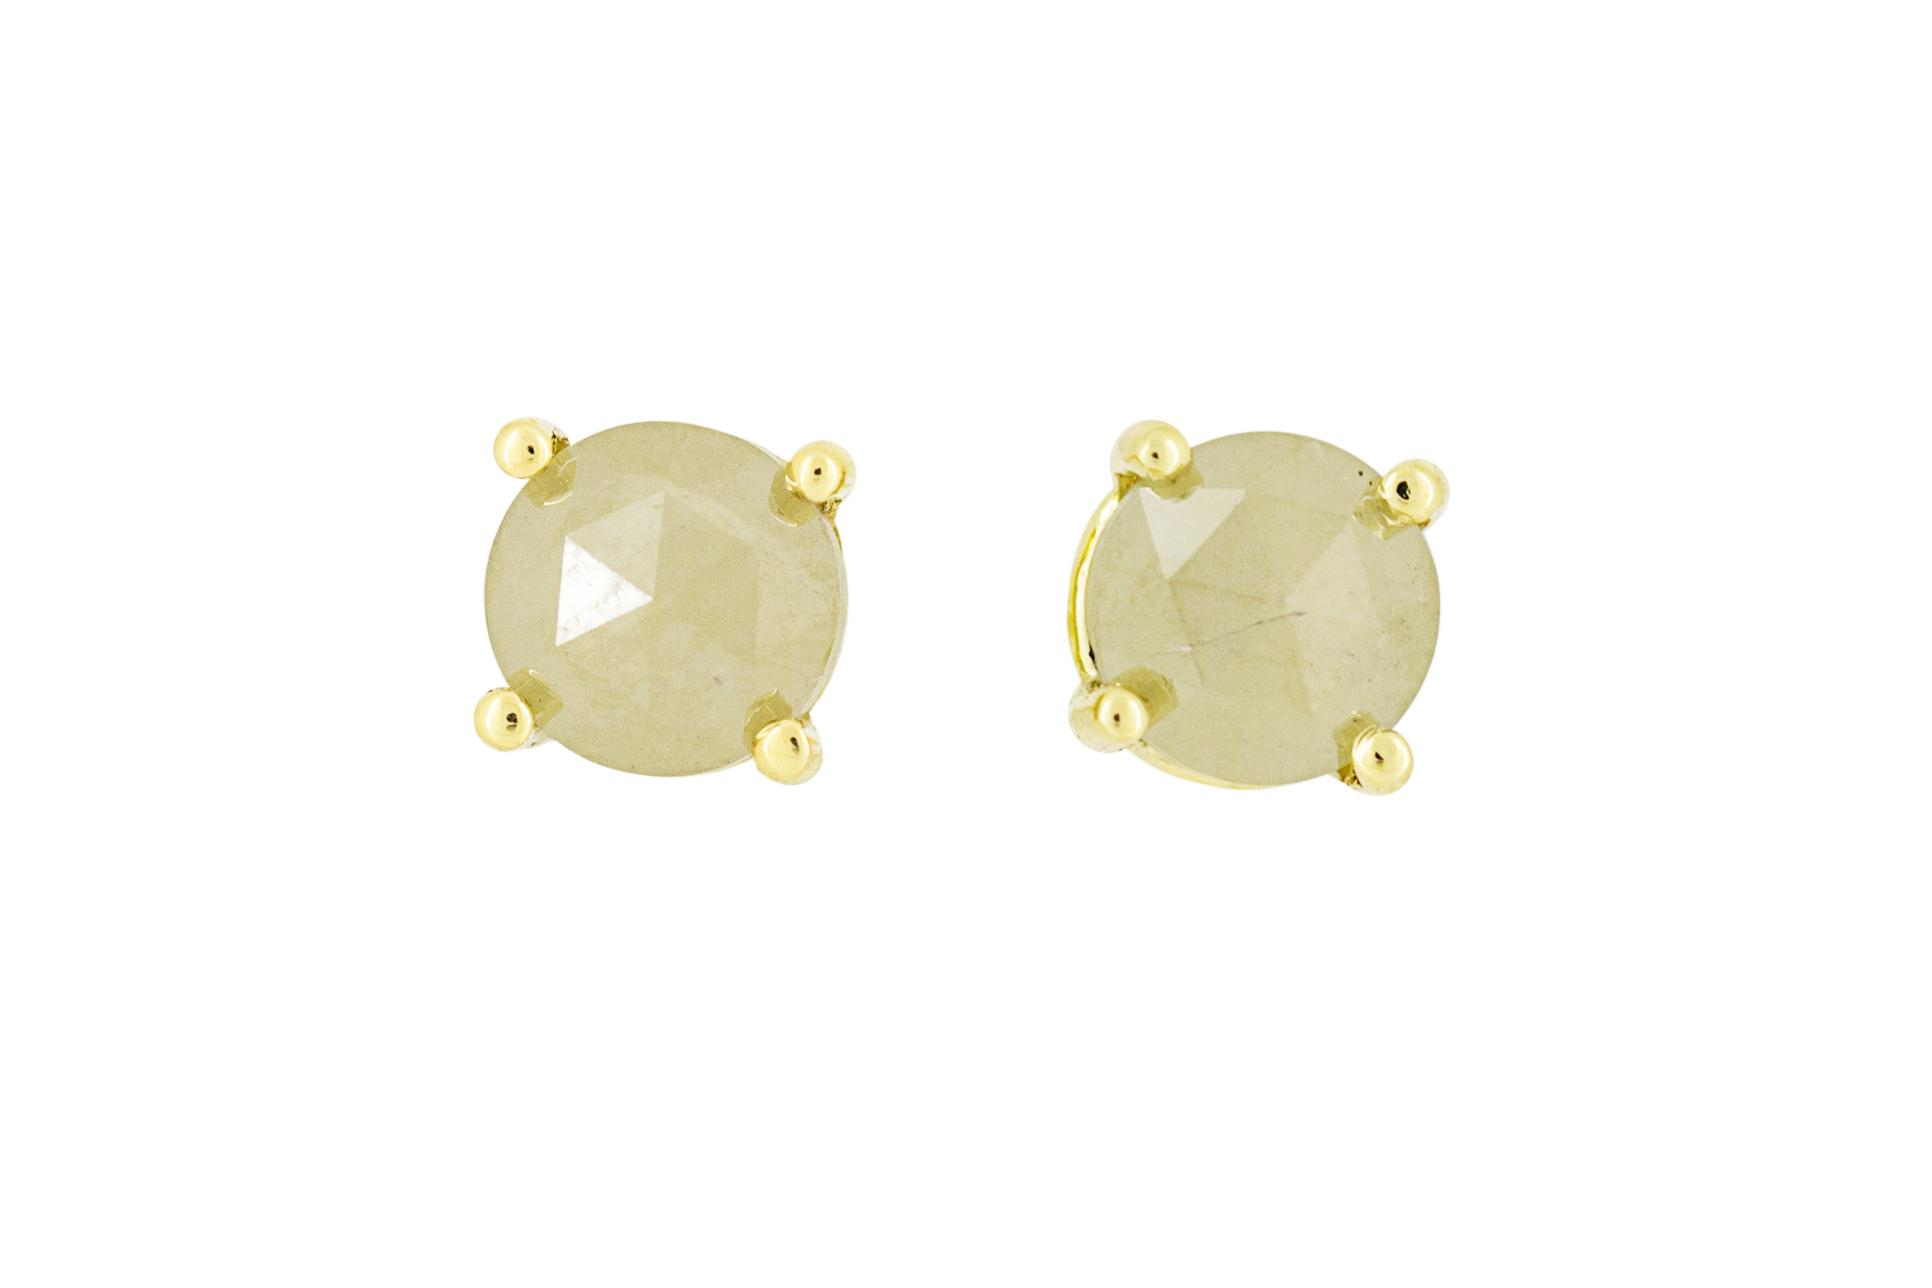 18ct Yellow Gold and Yellow / Greyish Diamond Studs